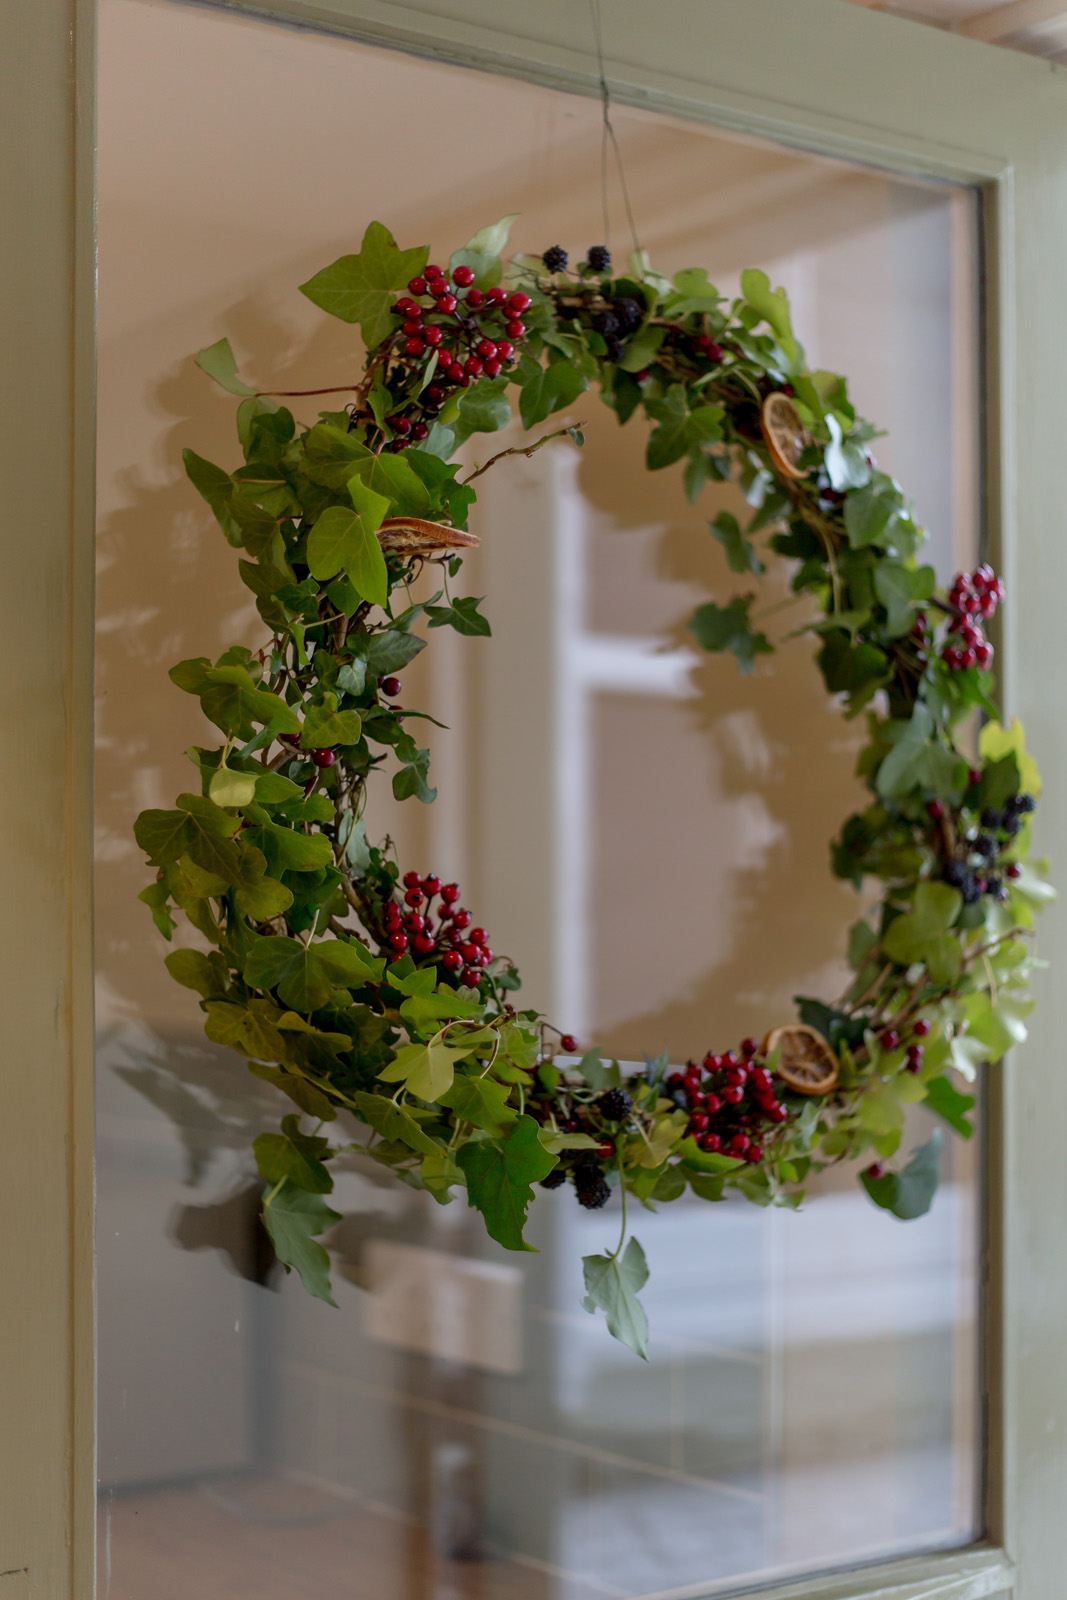 Festive wreath to welcome Christmas and New Year guests